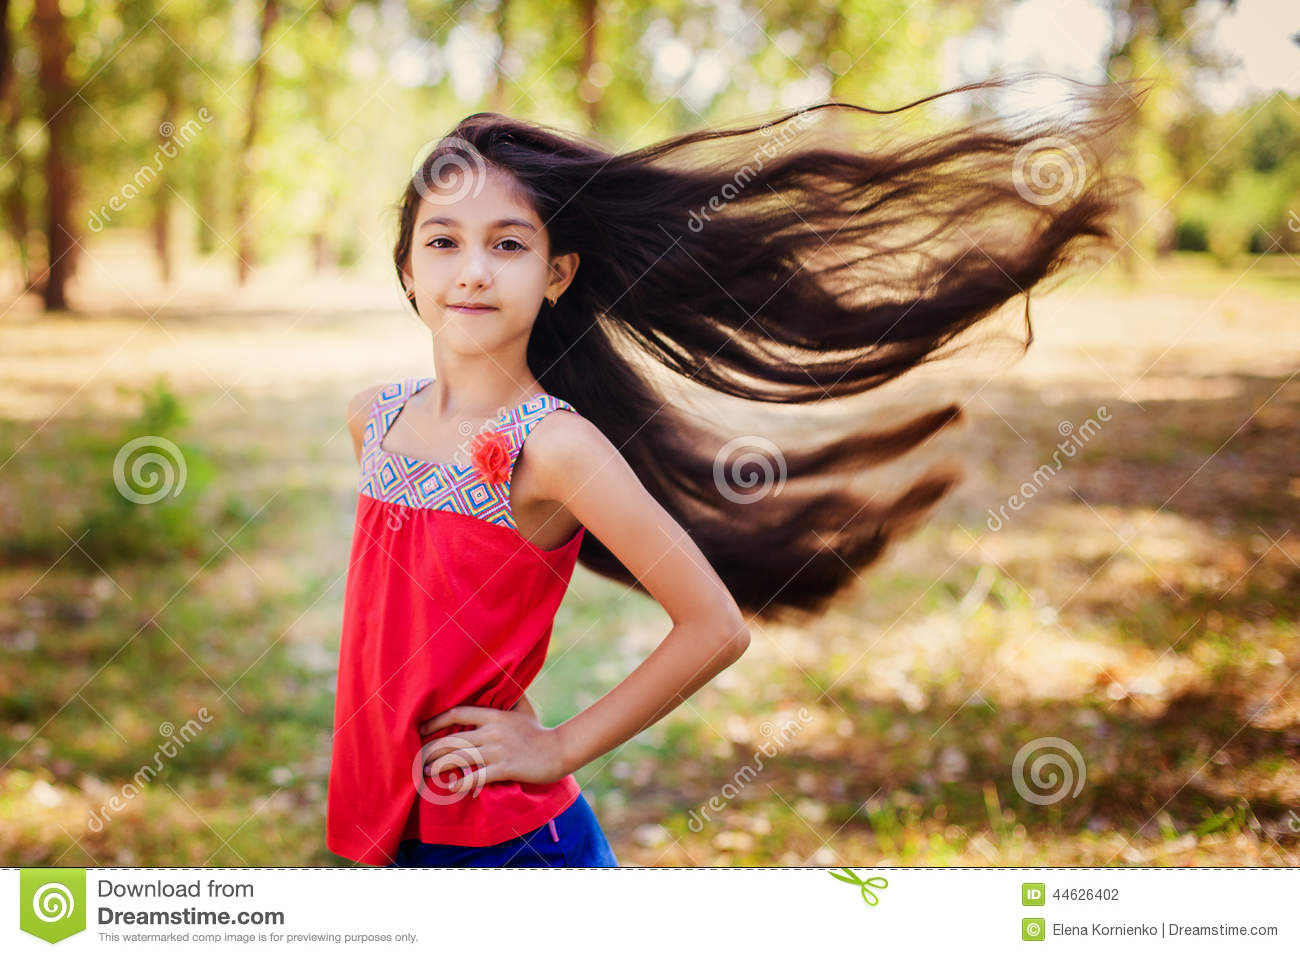 Girl with hair blowing in the wind